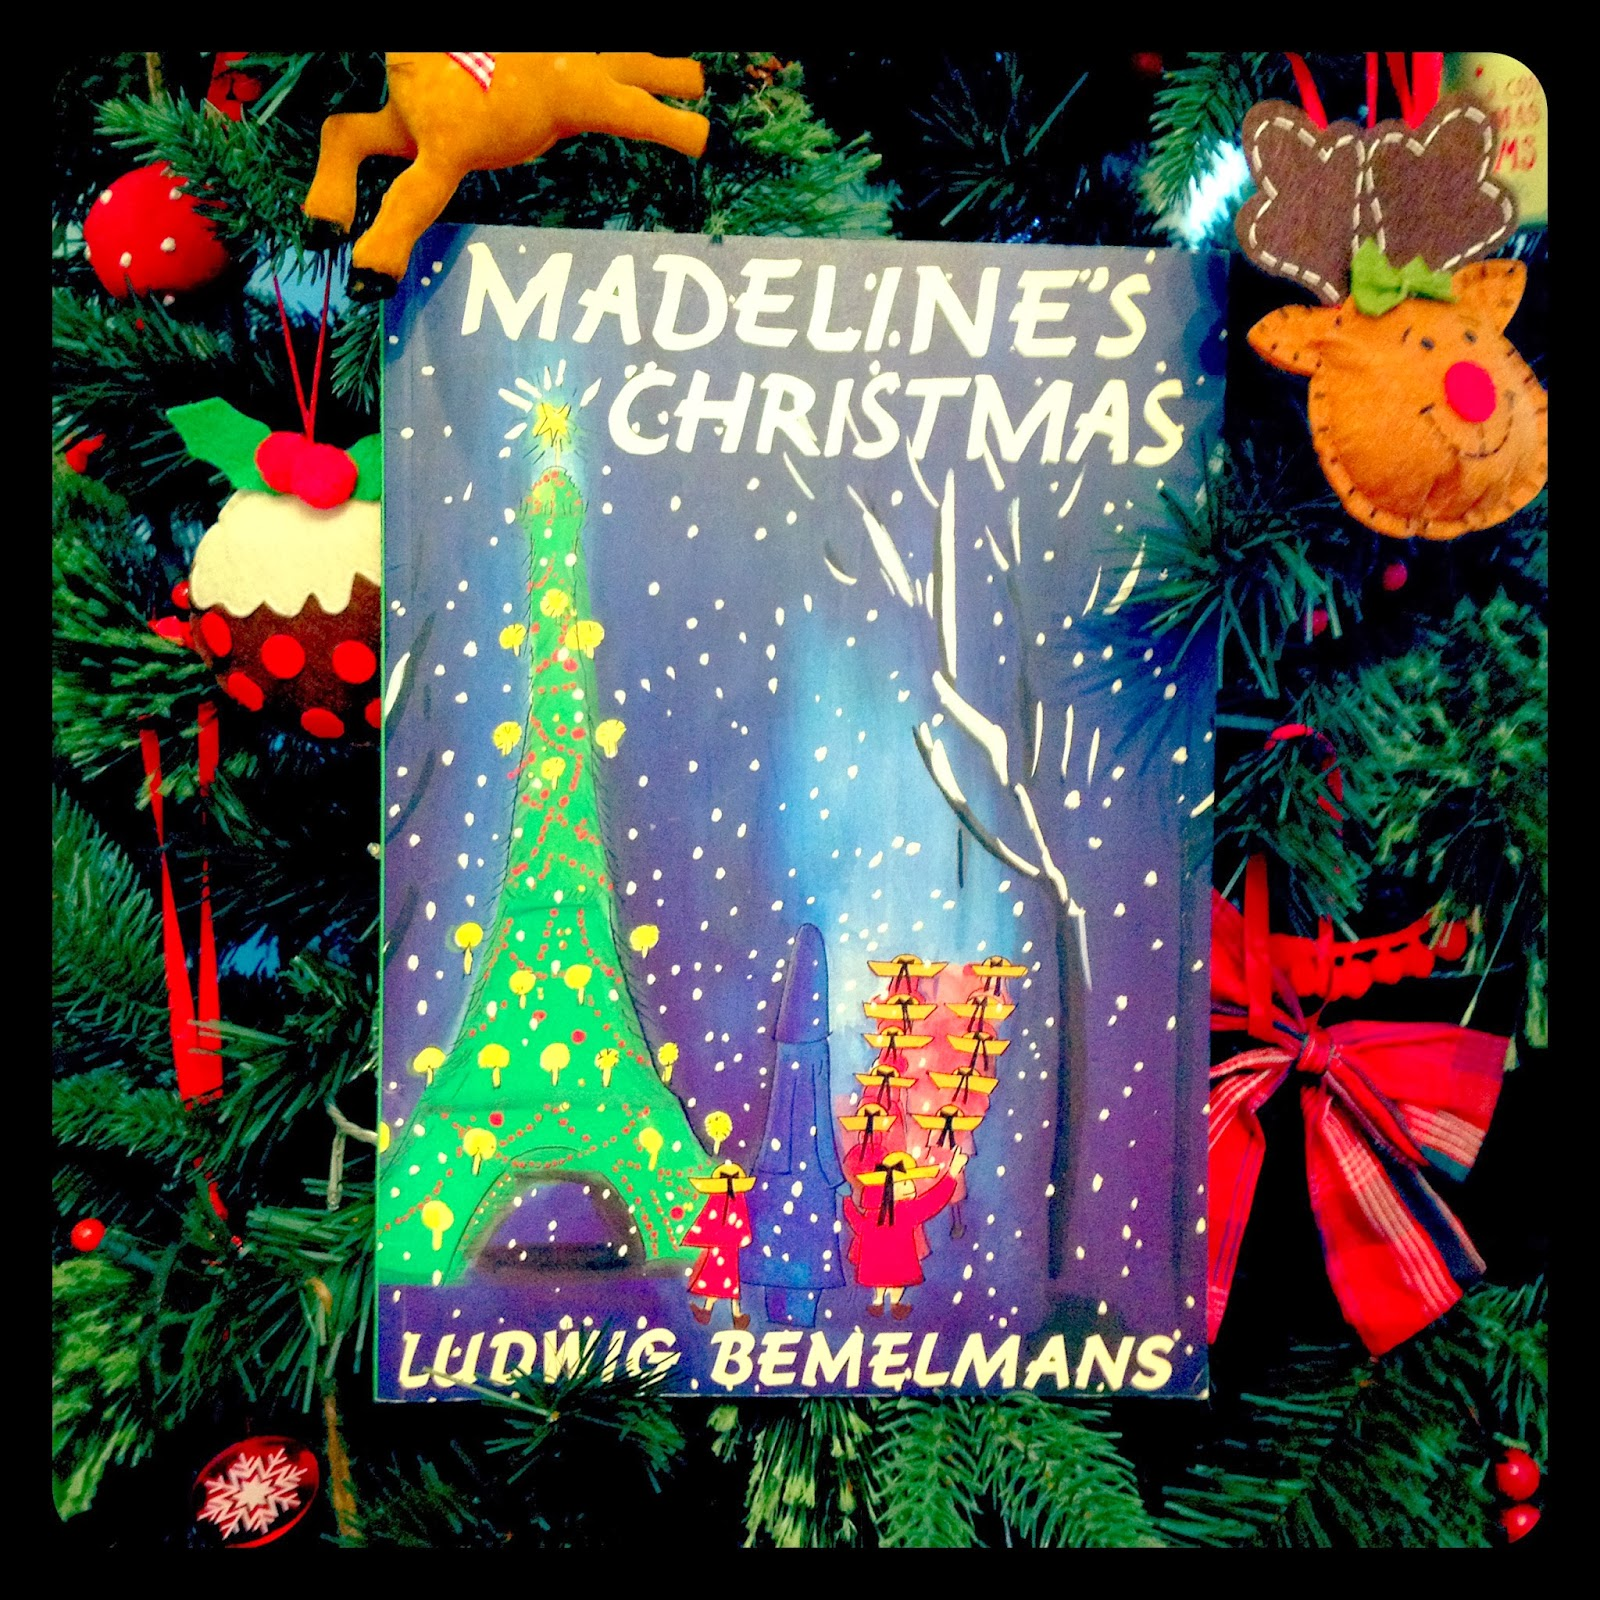 mamasVIB | V. I. BOOKCLUB: Build a classic *CHRISTMAS* library for kids (Madeline's Christmas), V. I. BOOKCLUB | Build a classic *CHRISTMAS library | Madeline's Christmas| classic kids books | nursery books | mamas VIB | Madelline